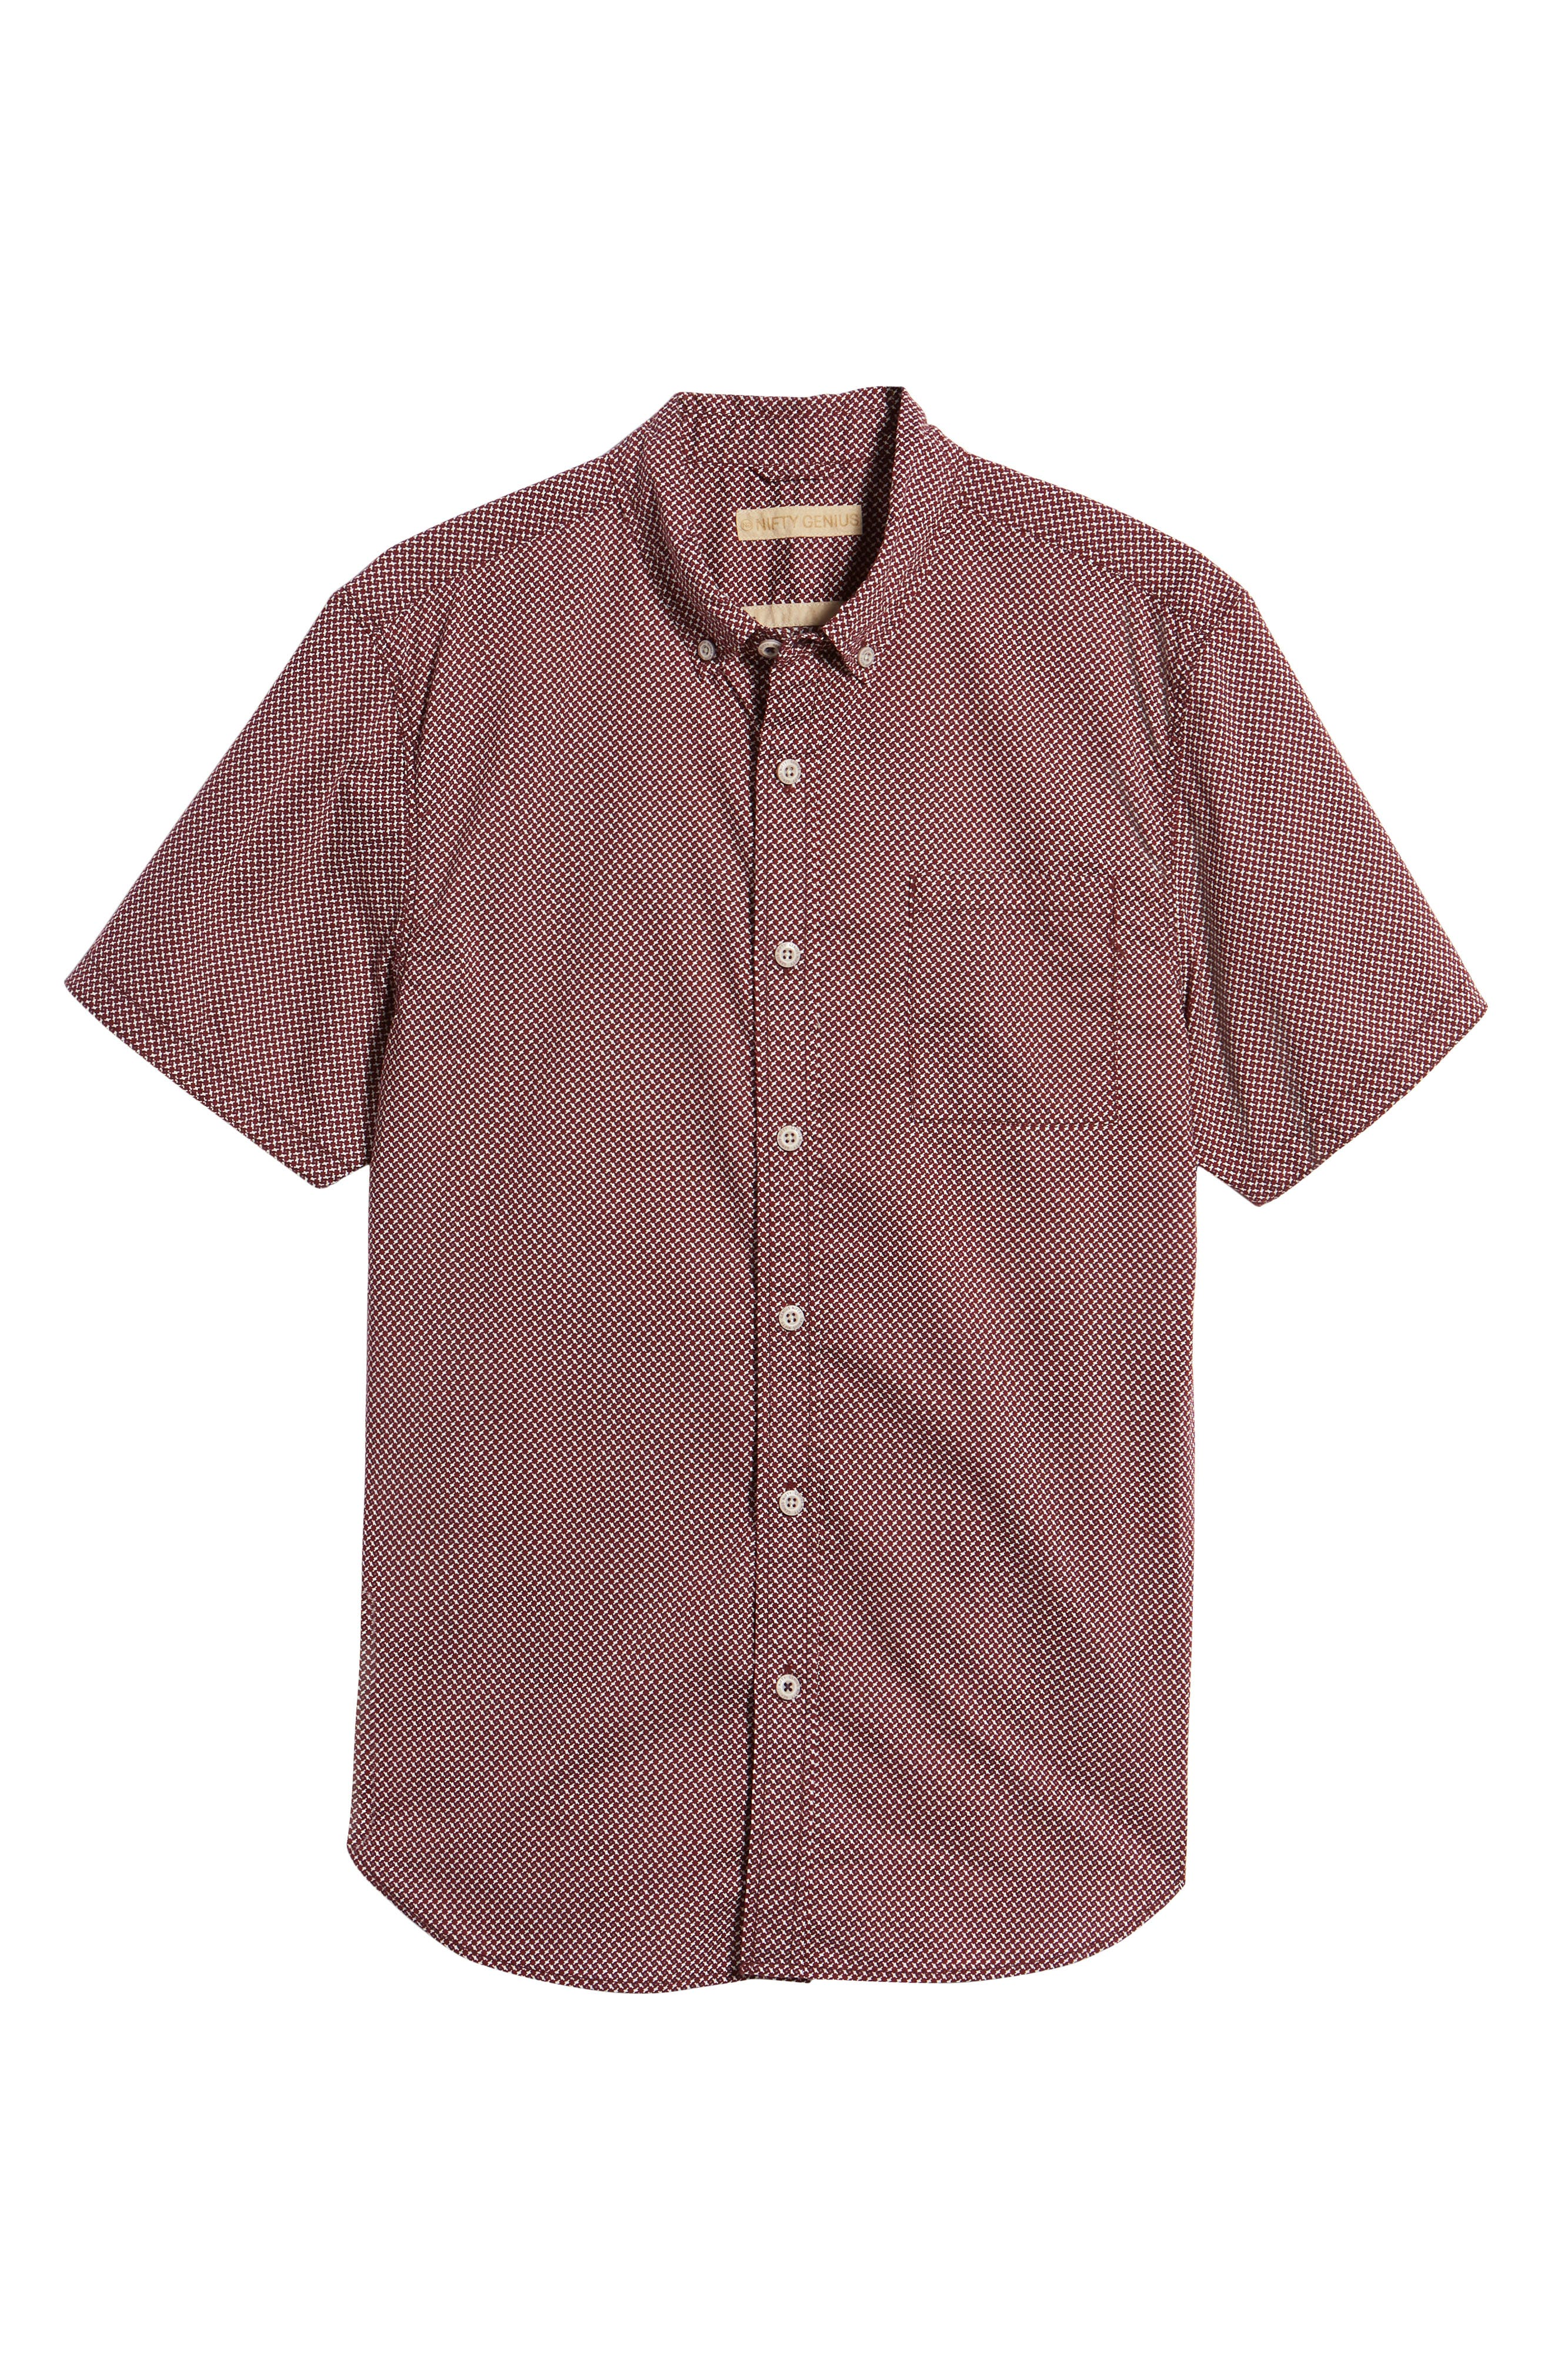 Truman Slim Fit Print Sport Shirt,                             Alternate thumbnail 6, color,                             601